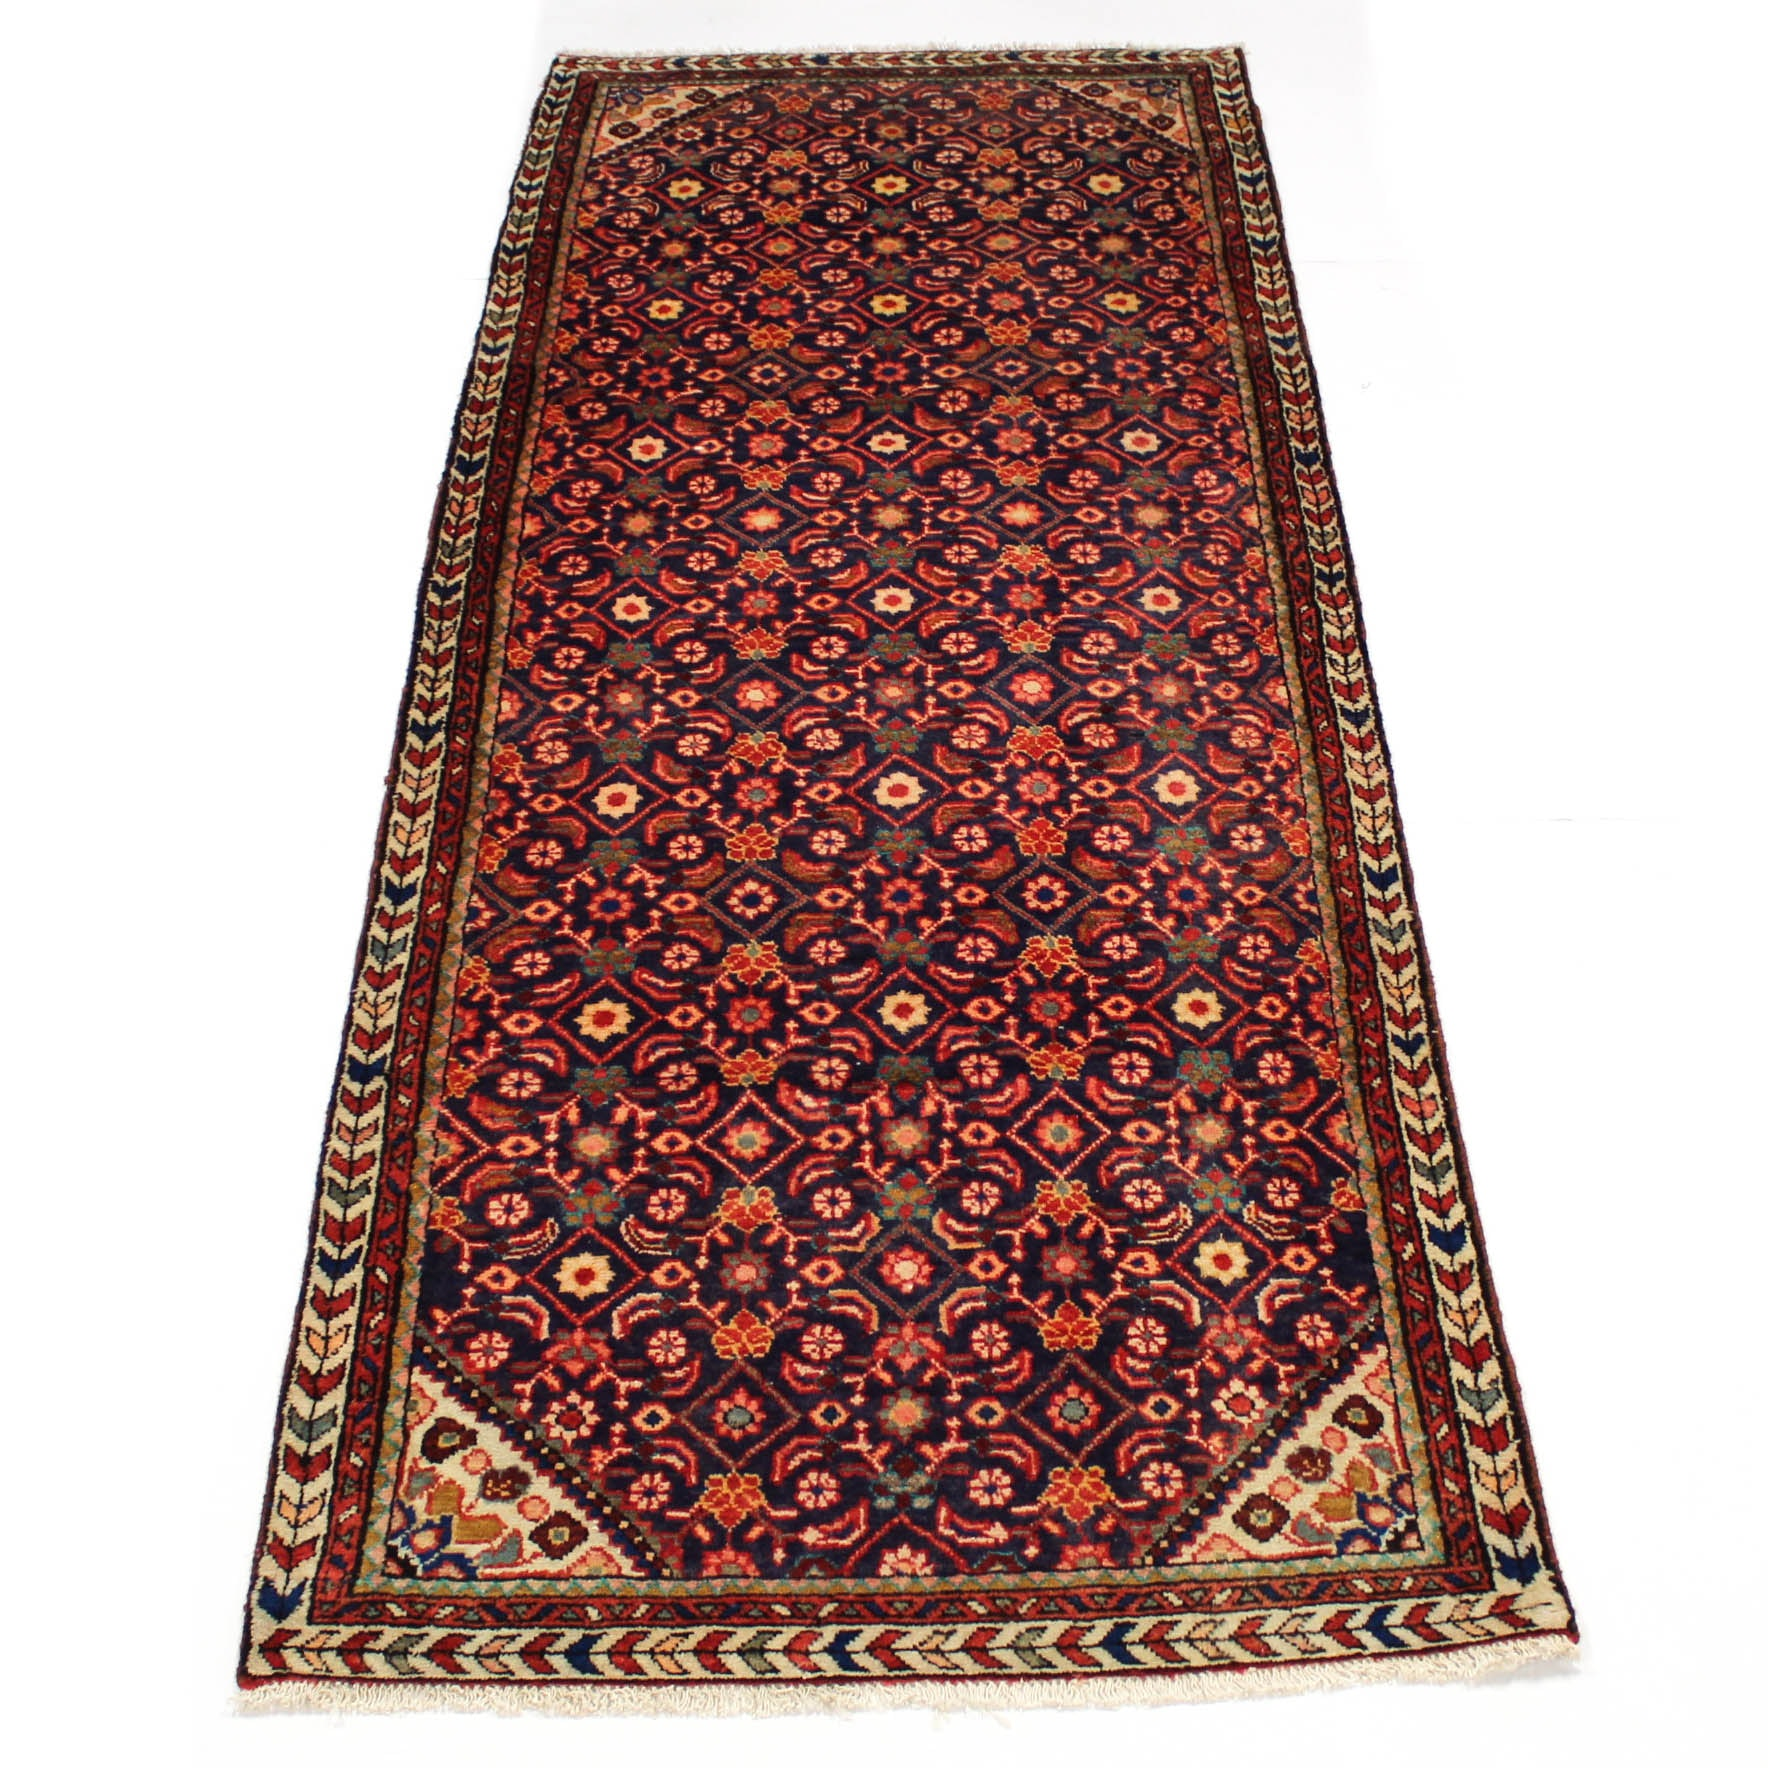 3'7 x 9'8 Semi-Antique Hand-Knotted Persian Mahal Carpet Runner